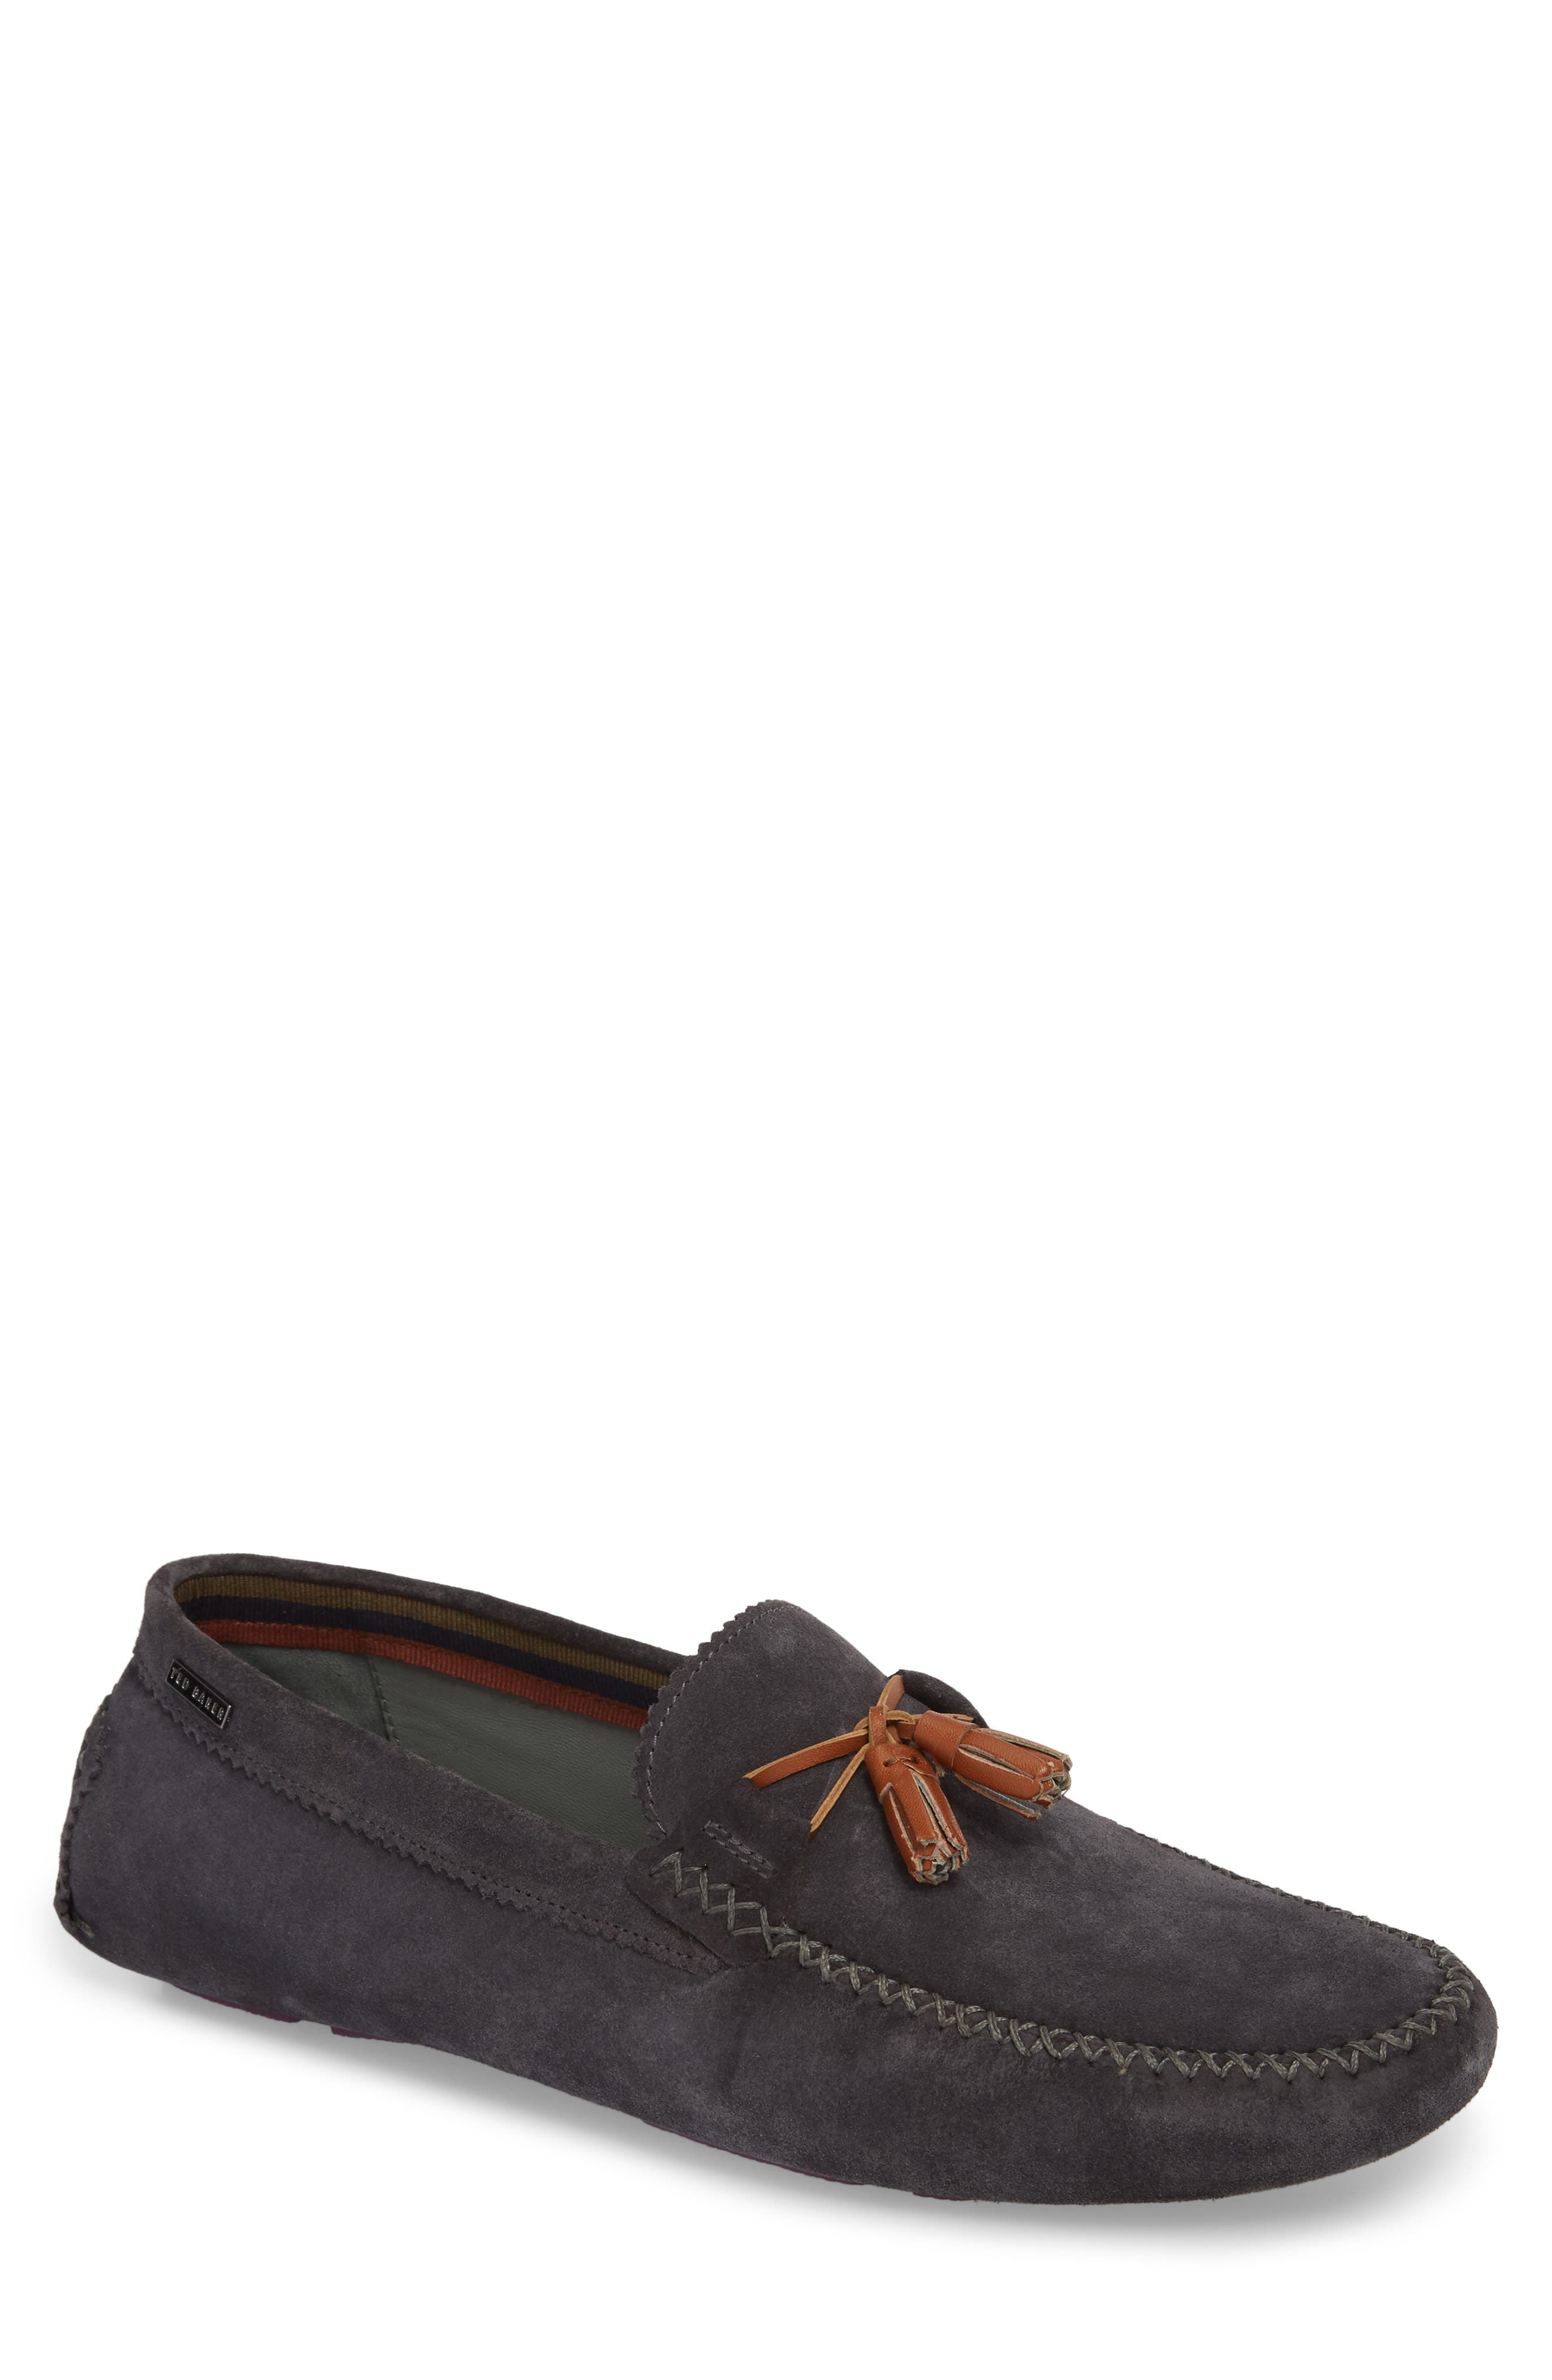 Urbonns Tasseled Driving Loafer,                             Main thumbnail 1, color,                             Grey Suede